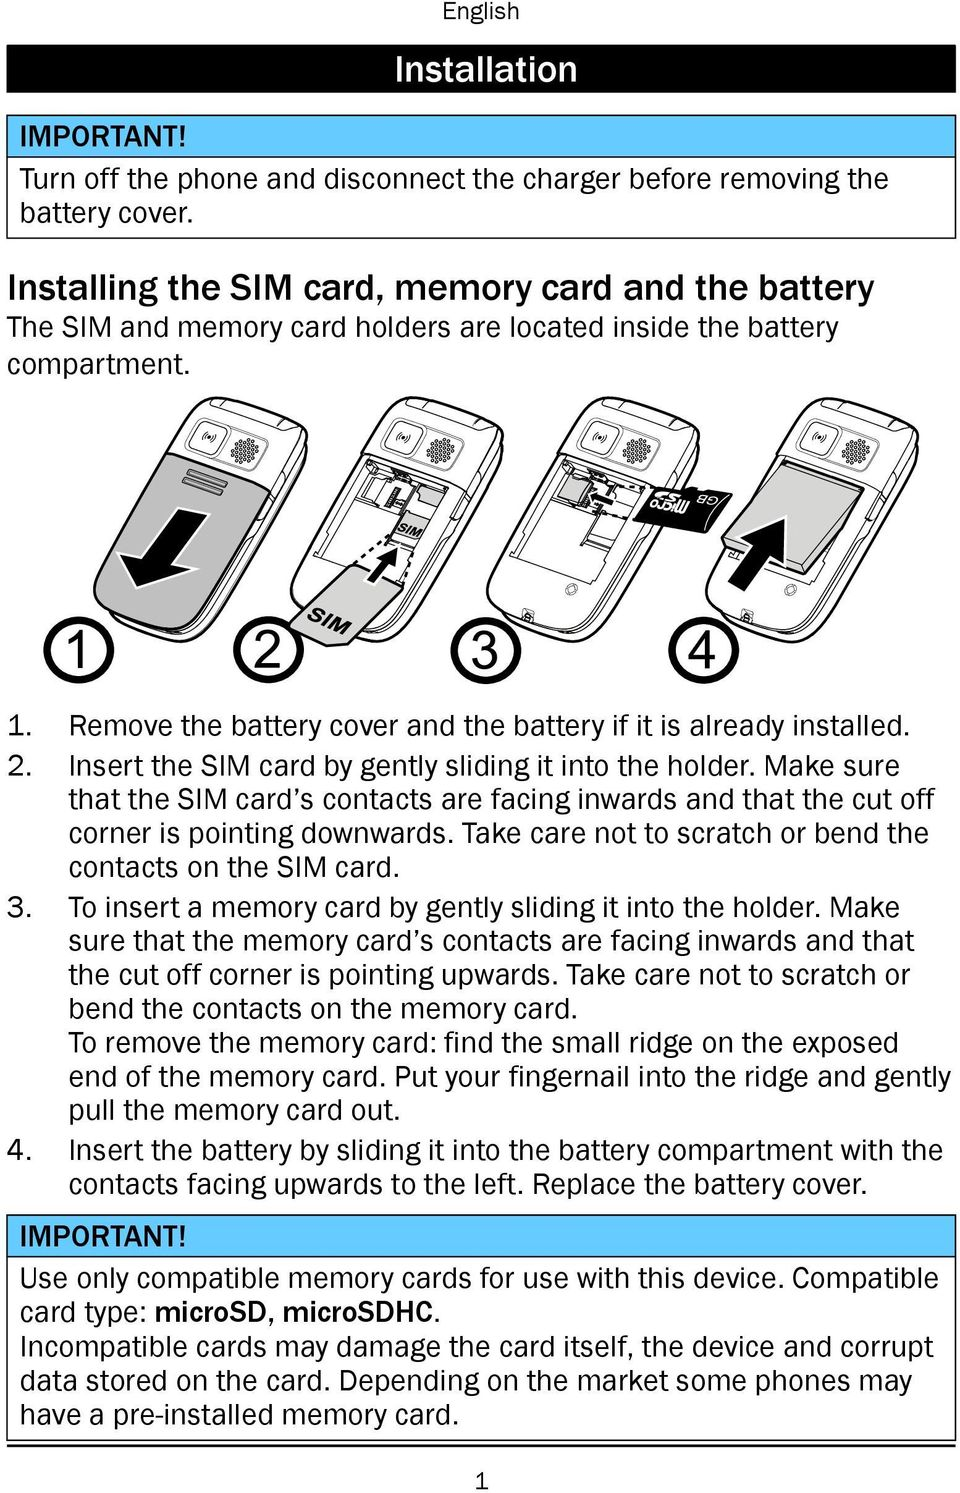 Remove the battery cover and the battery if it is already installed. 2. Insert the SIM card by gently sliding it into the holder.